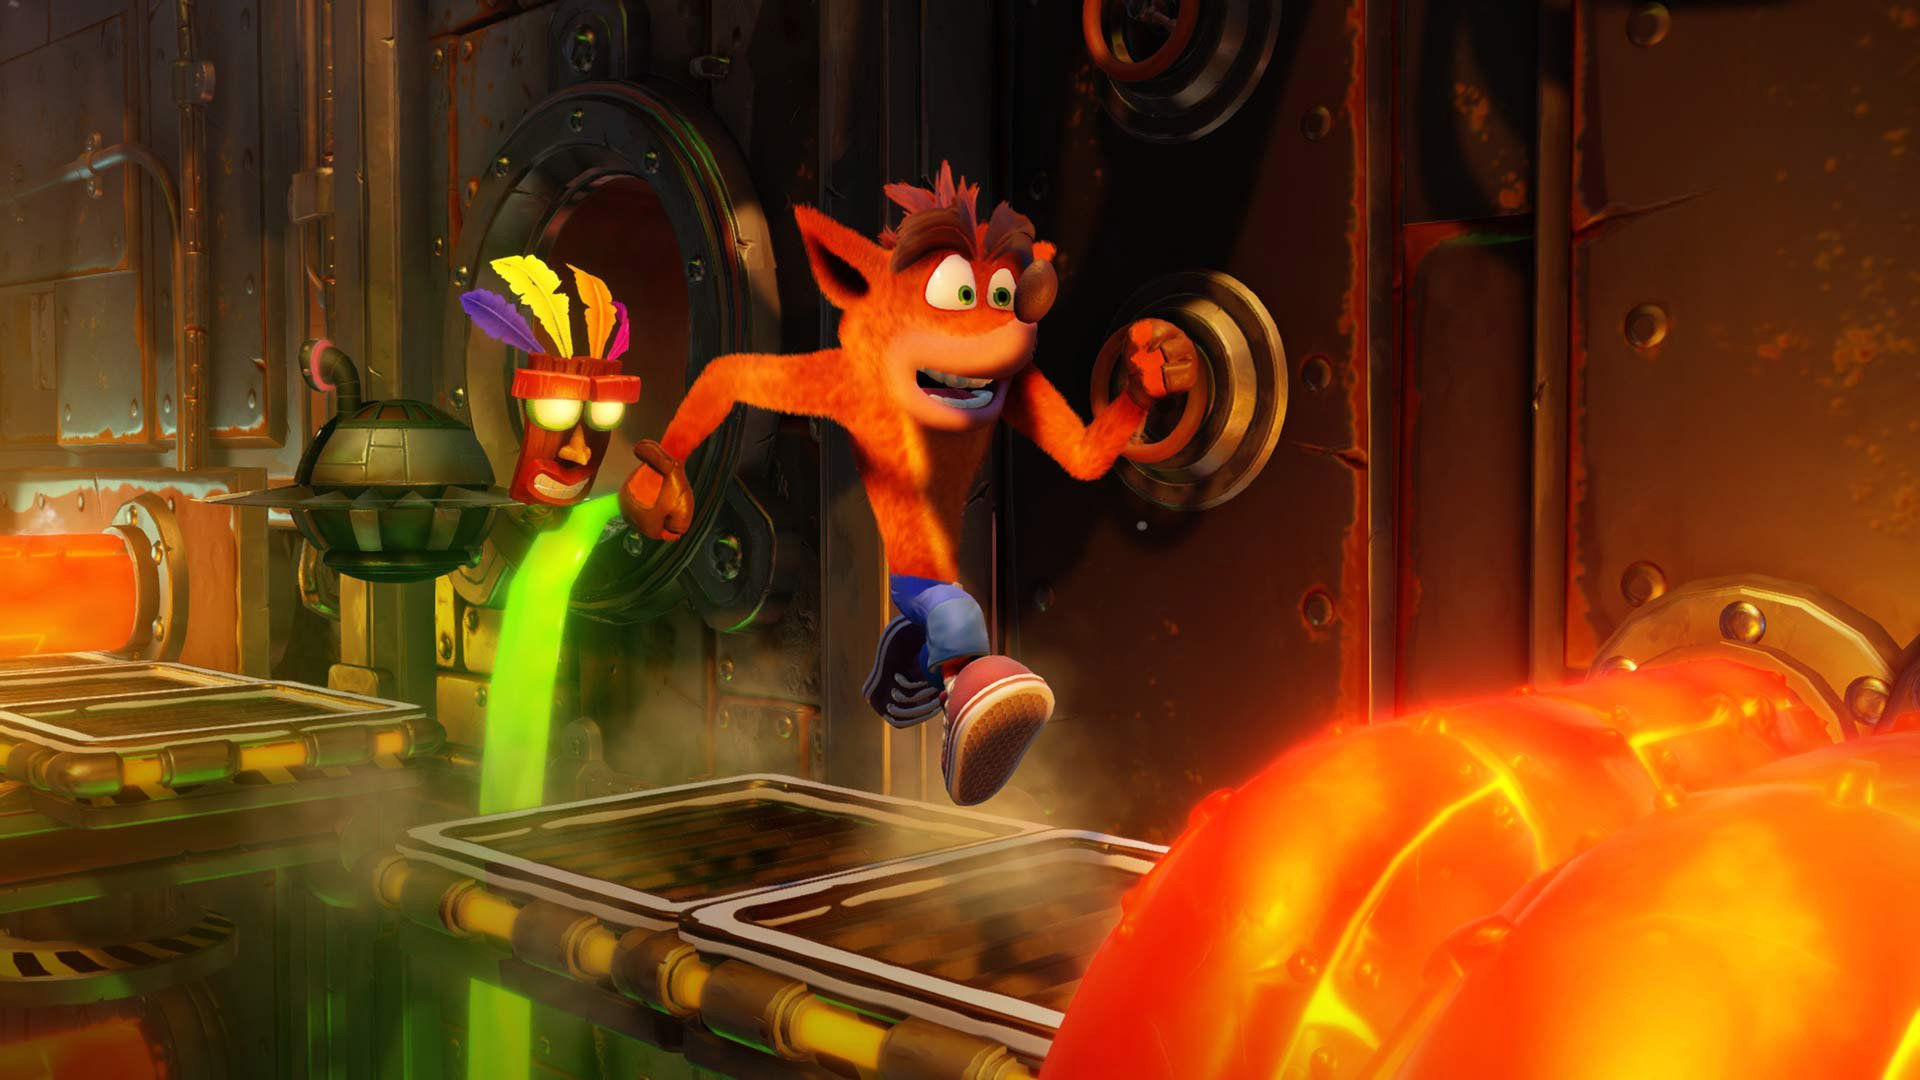 Activision wants to do more remasters thanks to Crash Bandicoot and Spyro screenshot